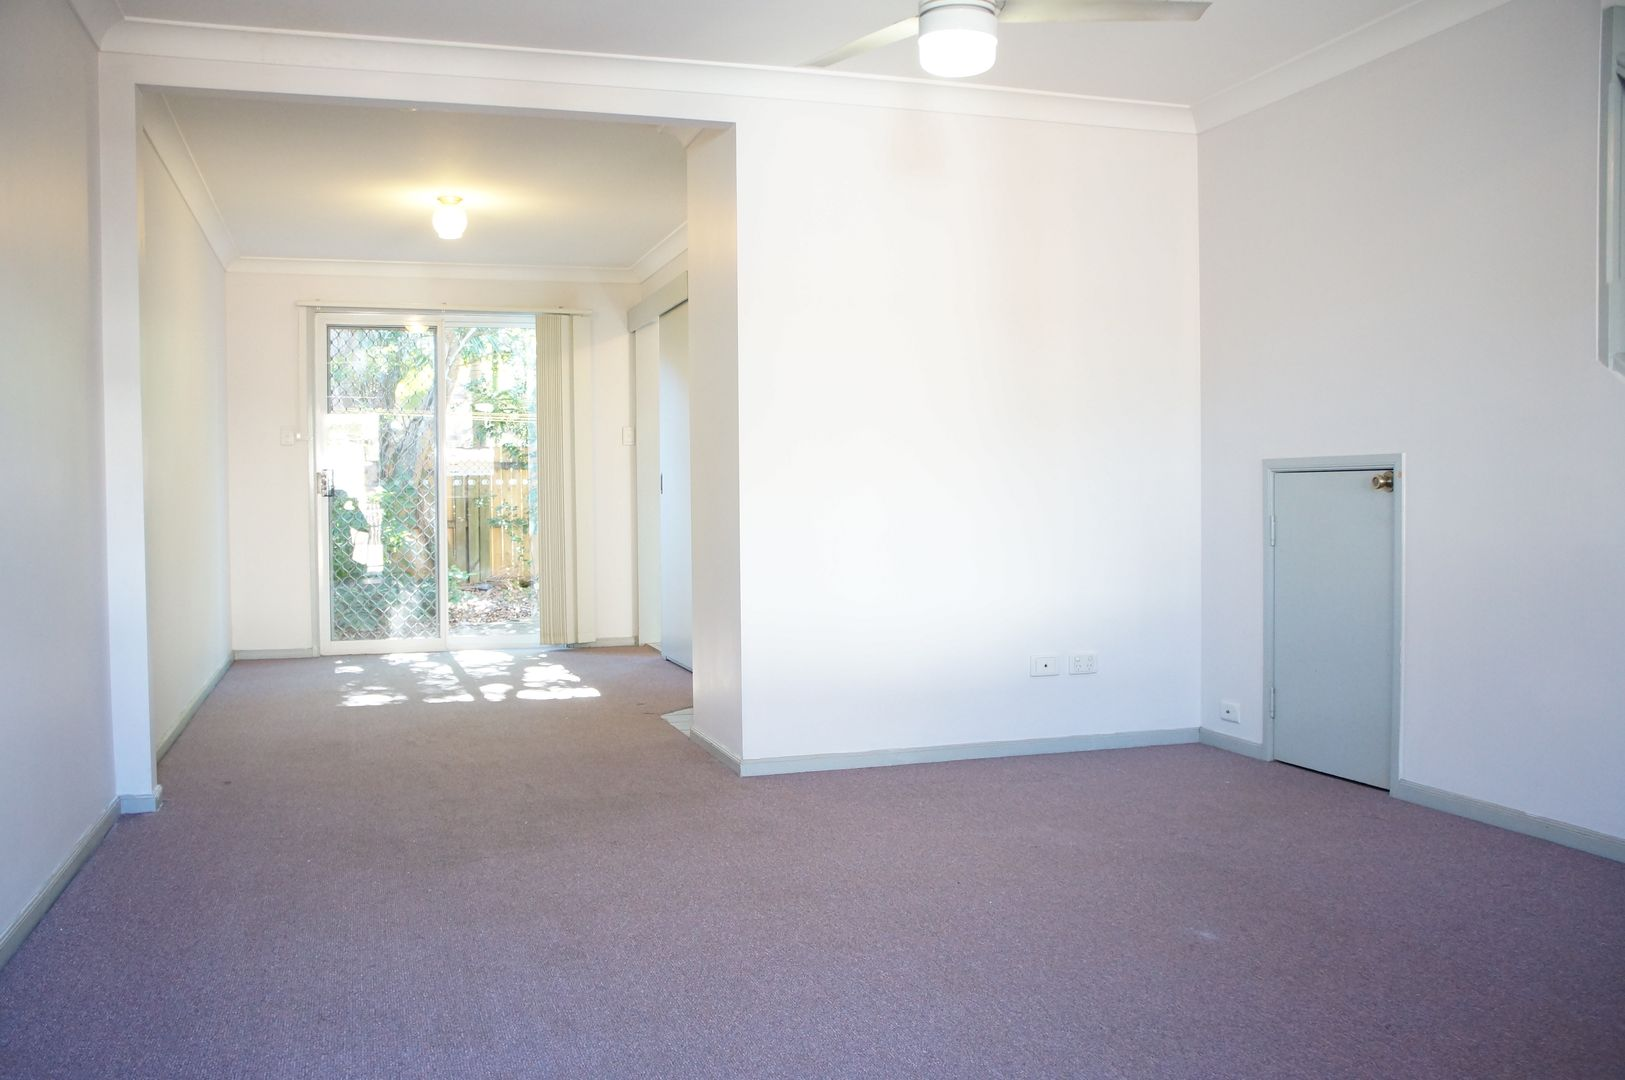 22/68-72 Springwood Rd, Rochedale South QLD 4123, Image 2